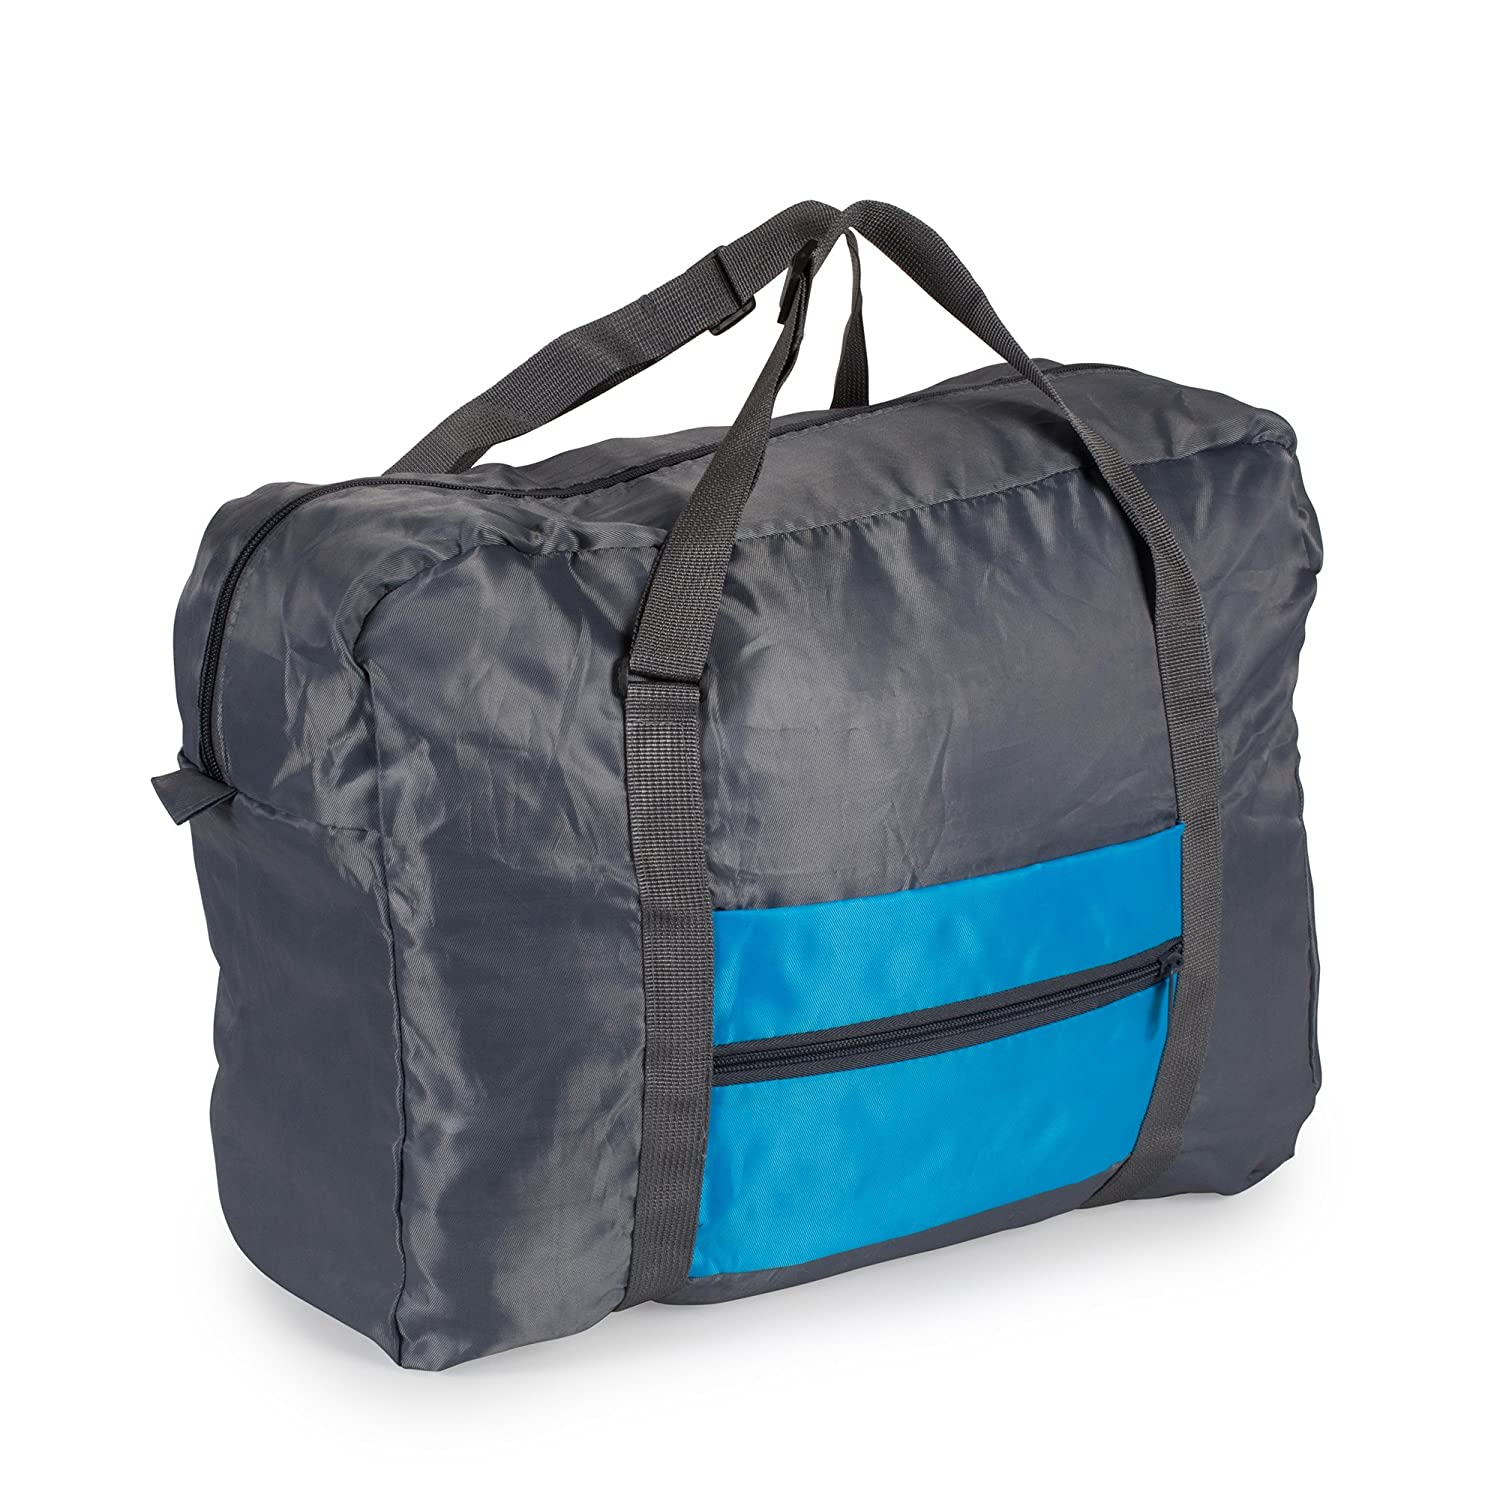 Travel Duffel Bag 81 Waterproof Lightweight Luggage bag for Sports Gym Vacation